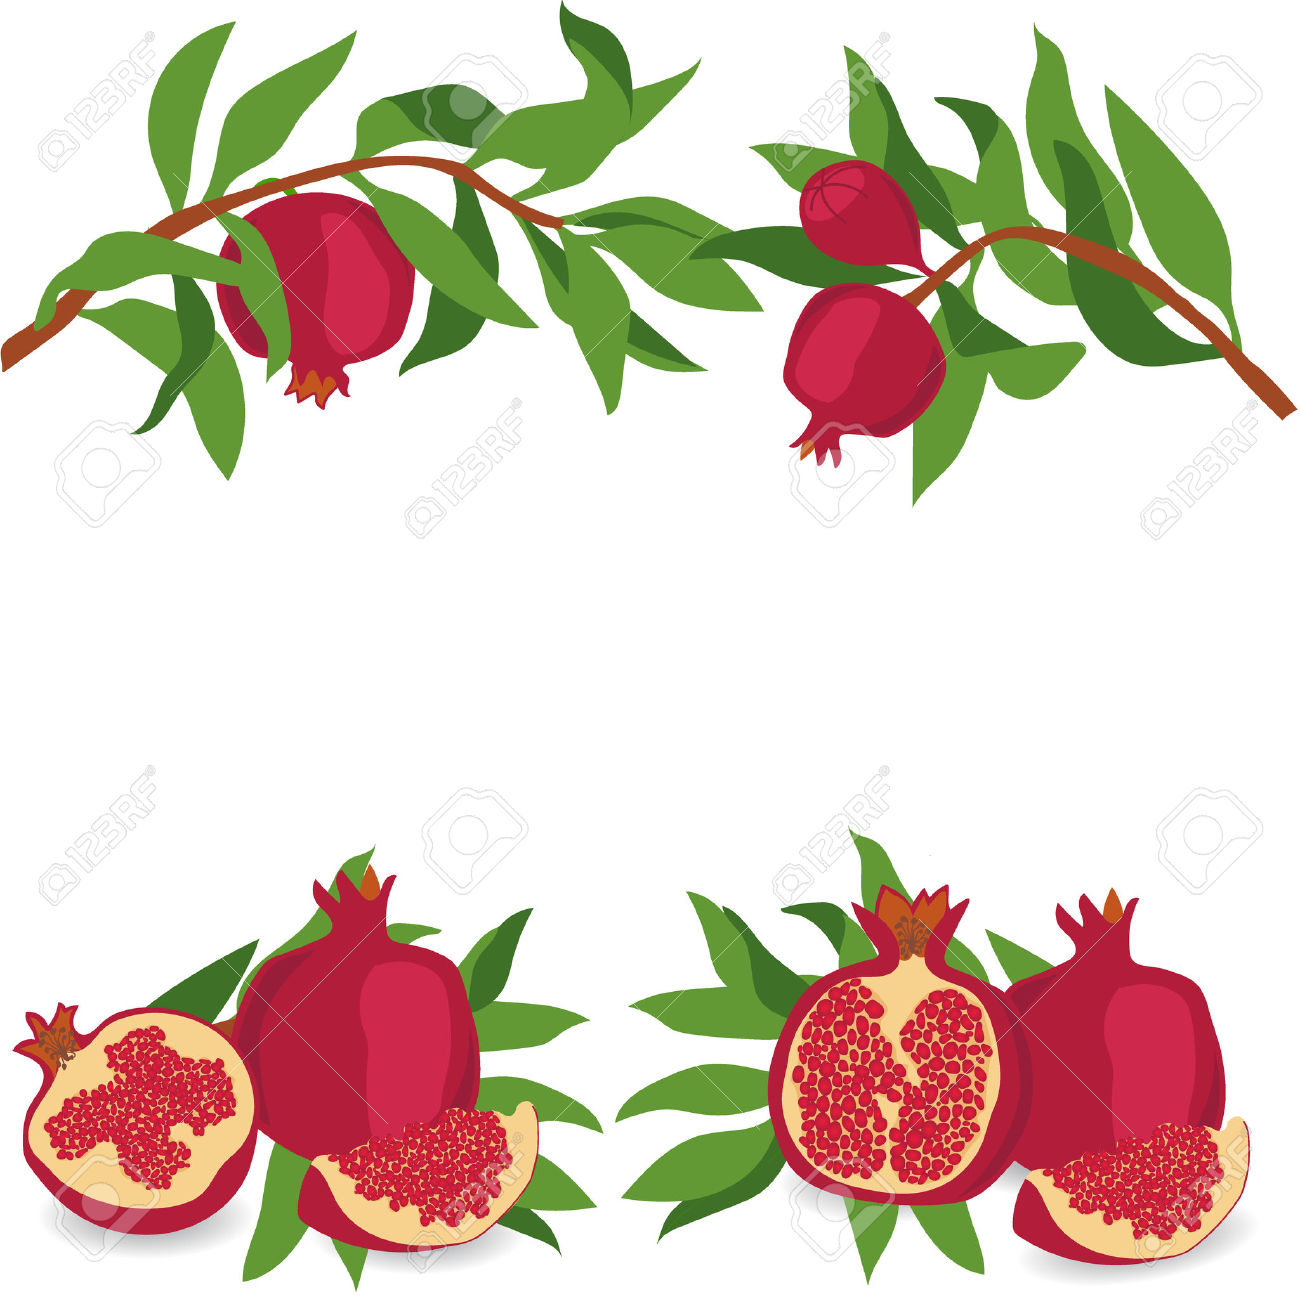 462 Cut Pomegranate Stock Vector Illustration And Royalty Free Cut.